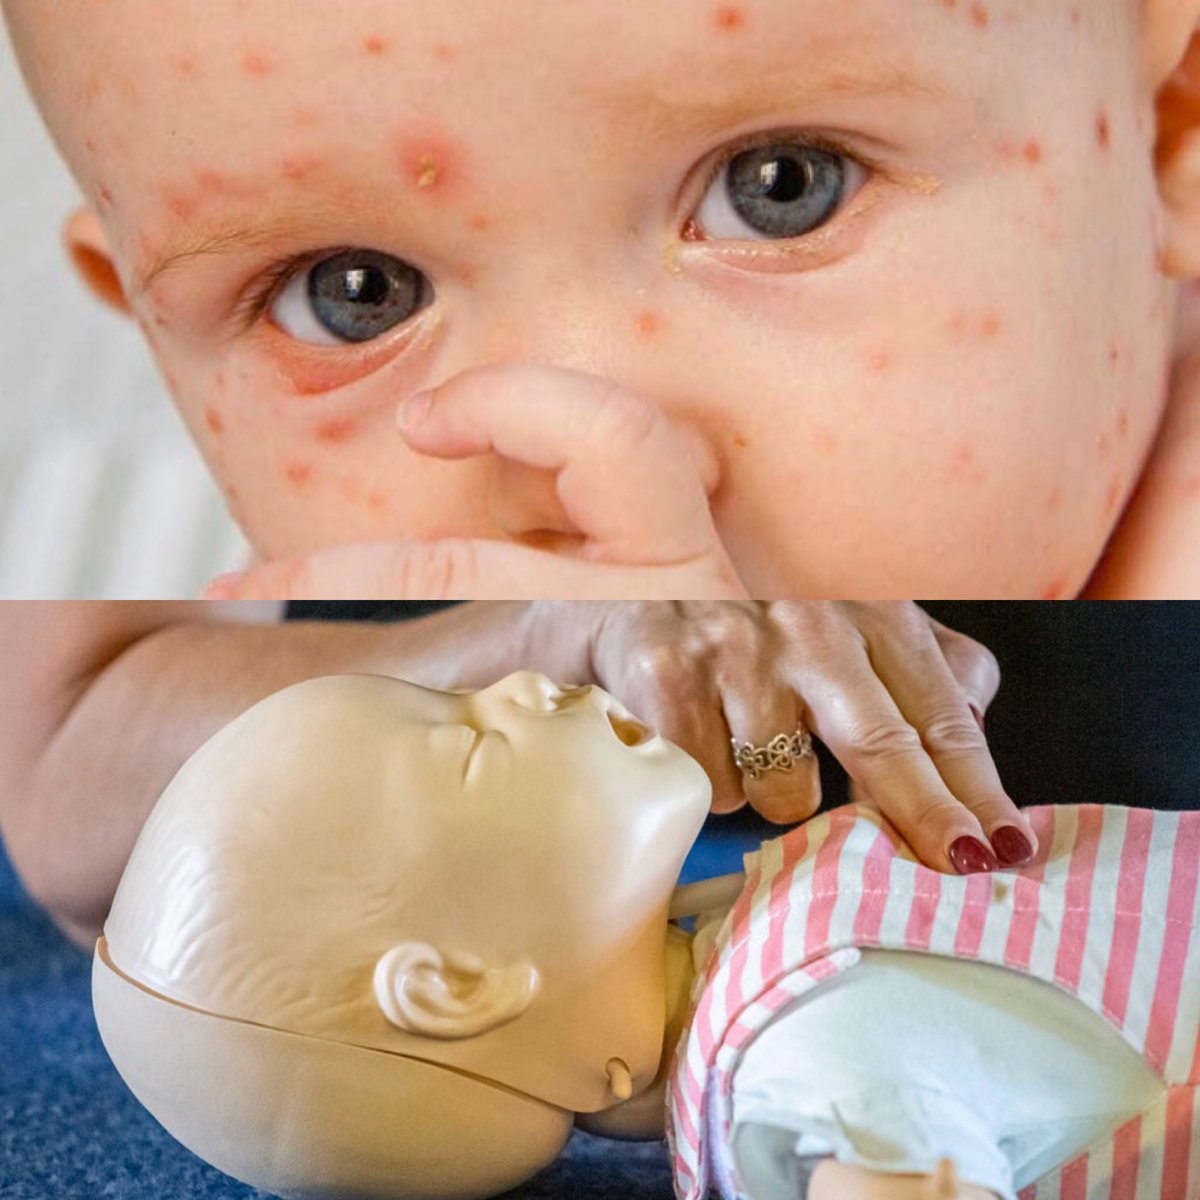 Want to learn baby & child CPR or complete a full paediatric course? Contact our team for details on our open courses or why not hold a talk in your own home? From just £10pp #cpr #babycpr #childcpr #paediatric #babyfirstaid #childfirstiad #firstaidtraining #firstaidessexpic.twitter.com/S0UScIBRPZ